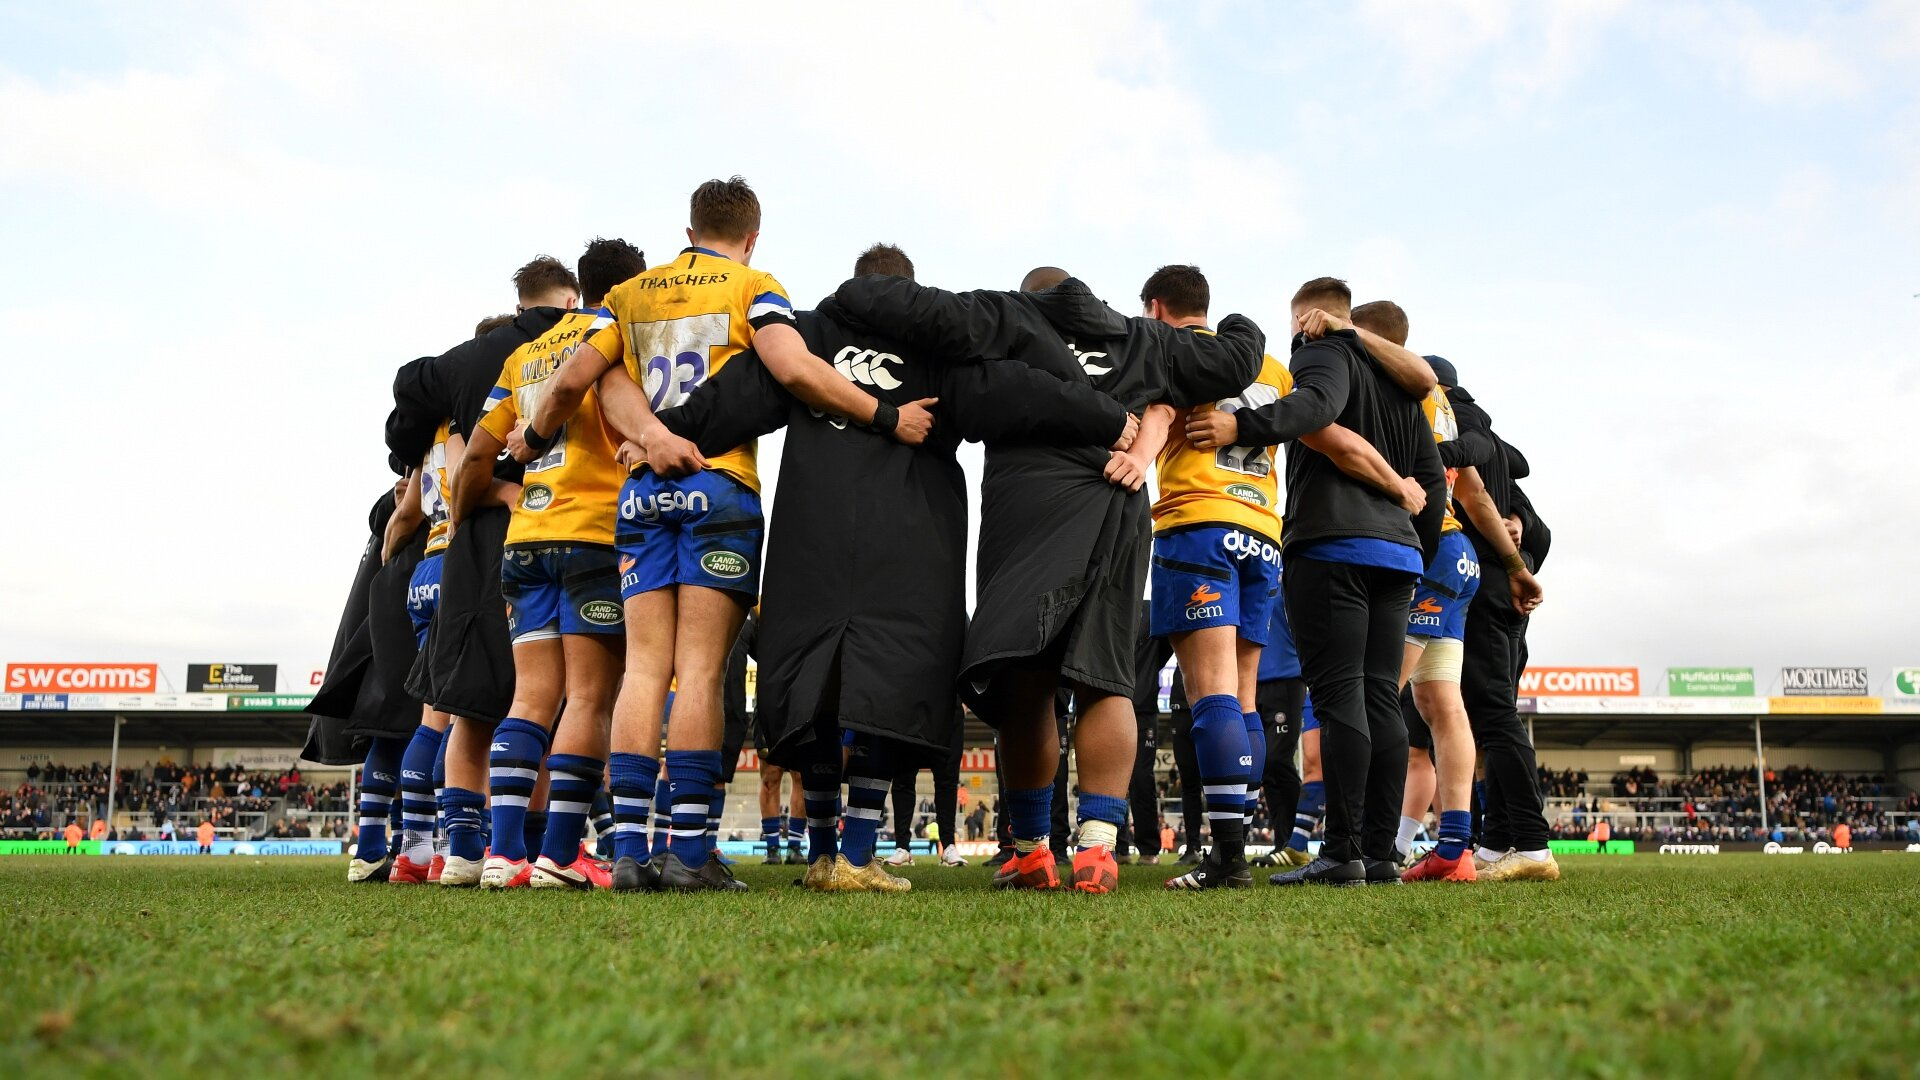 Disgruntled Premiership players consider forming breakaway player union - report